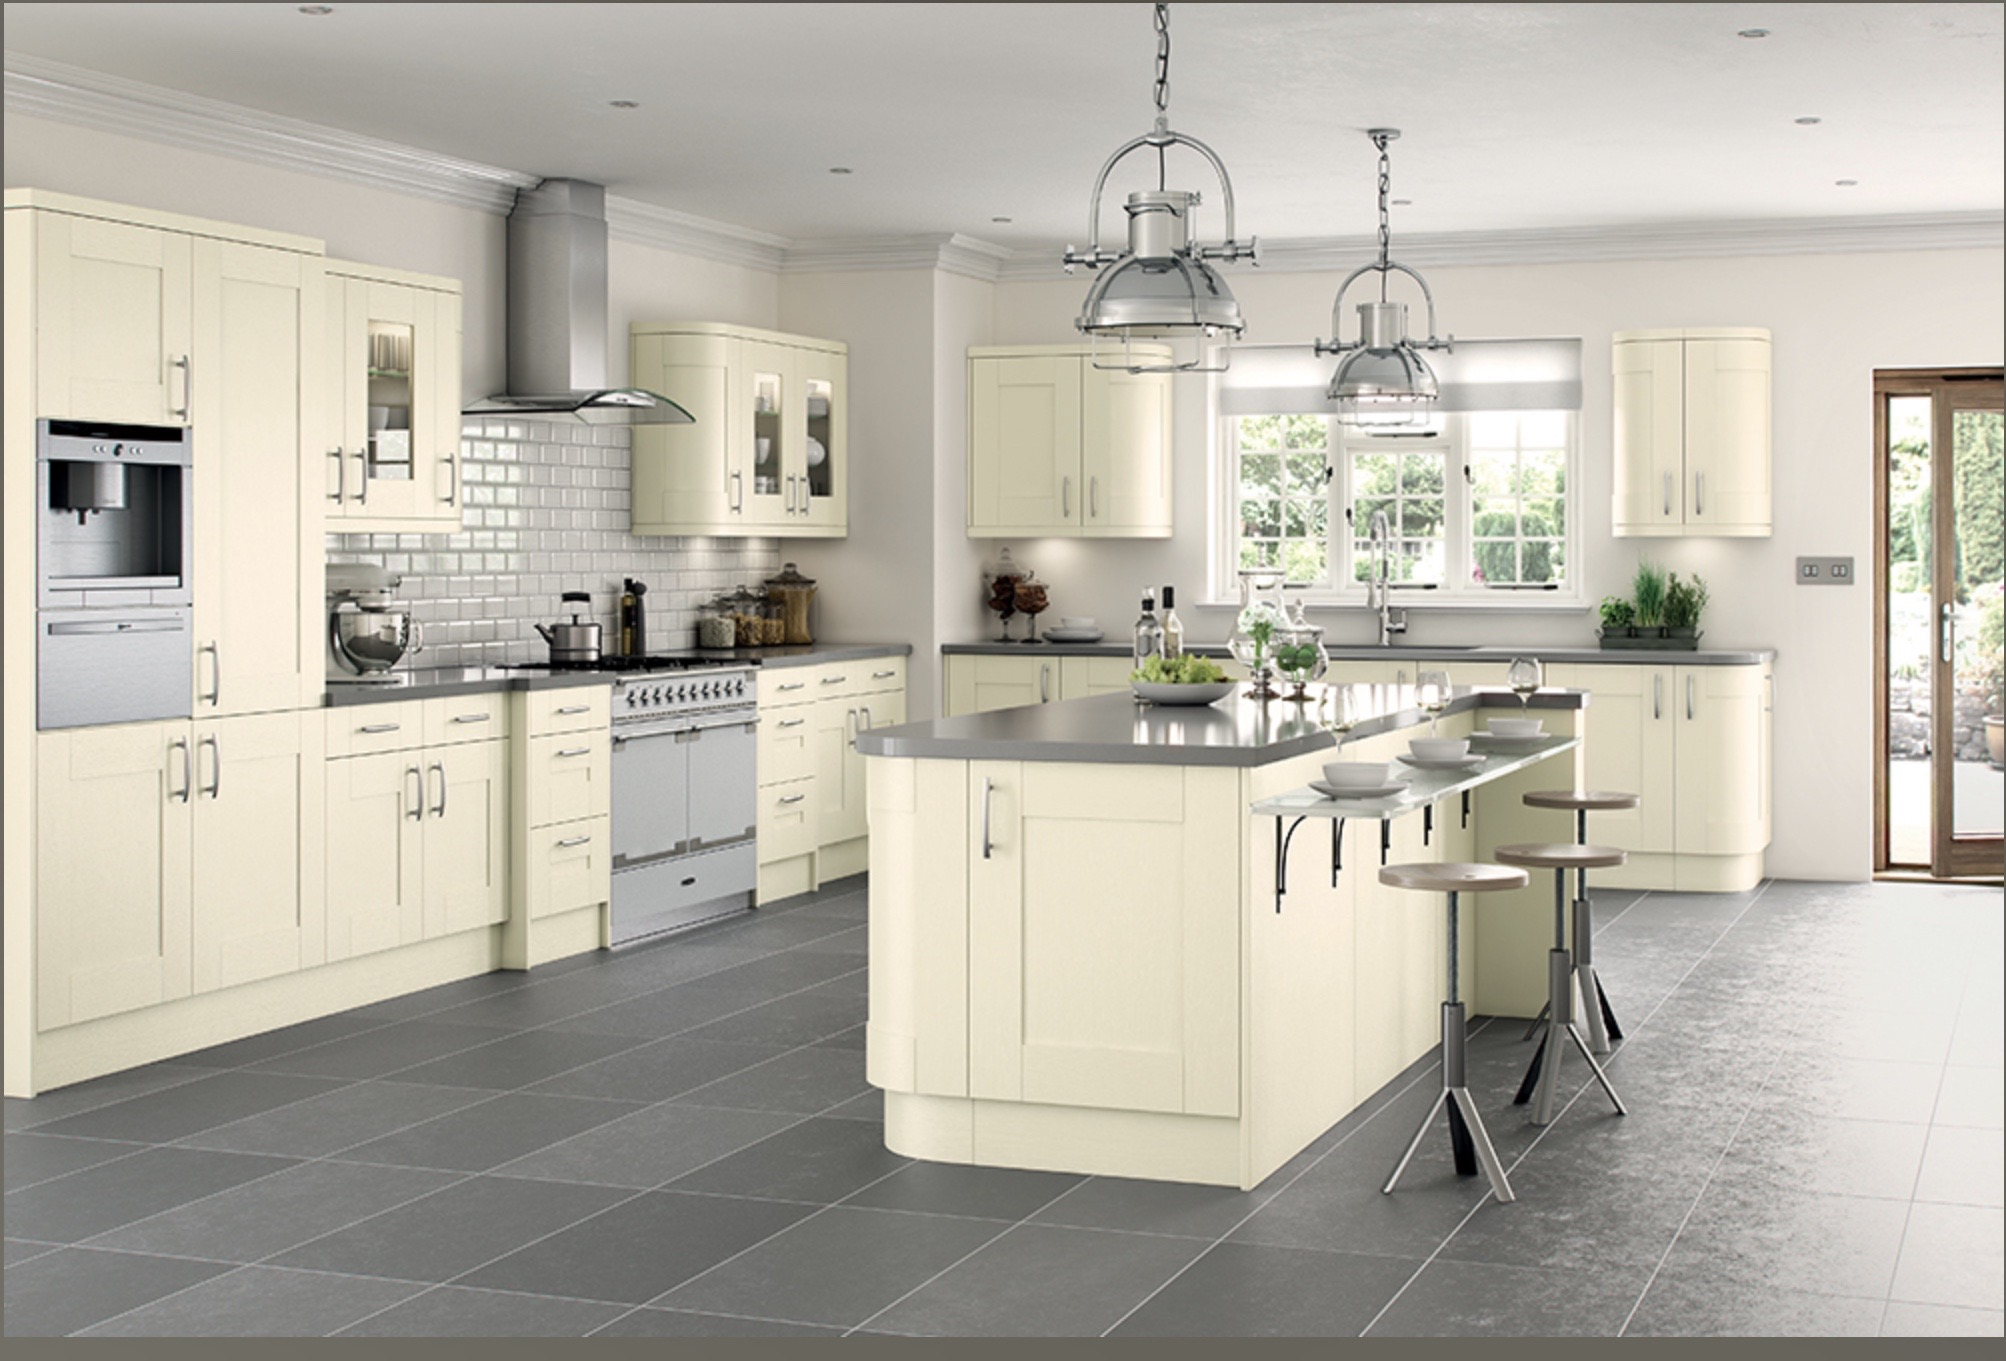 Size Matters Diffe Height Wall Units For All Types Of Kitchen Blog Design Style Tips Ideas Warehouse Uk